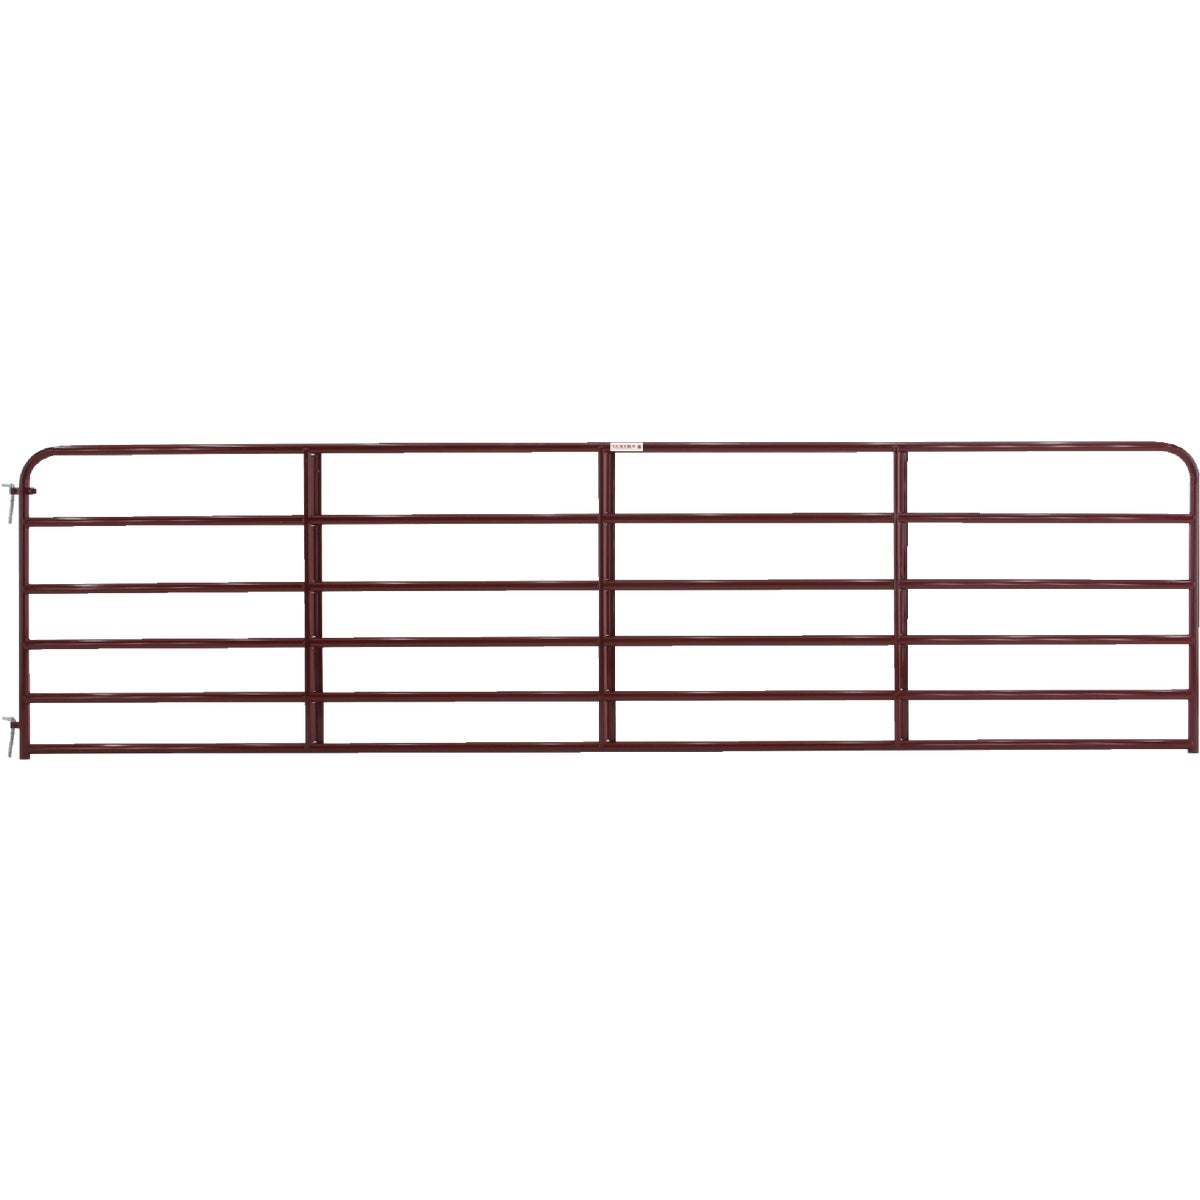 16' 6BAR RED ECONO GATE - 6ER16 by Tarter Llc